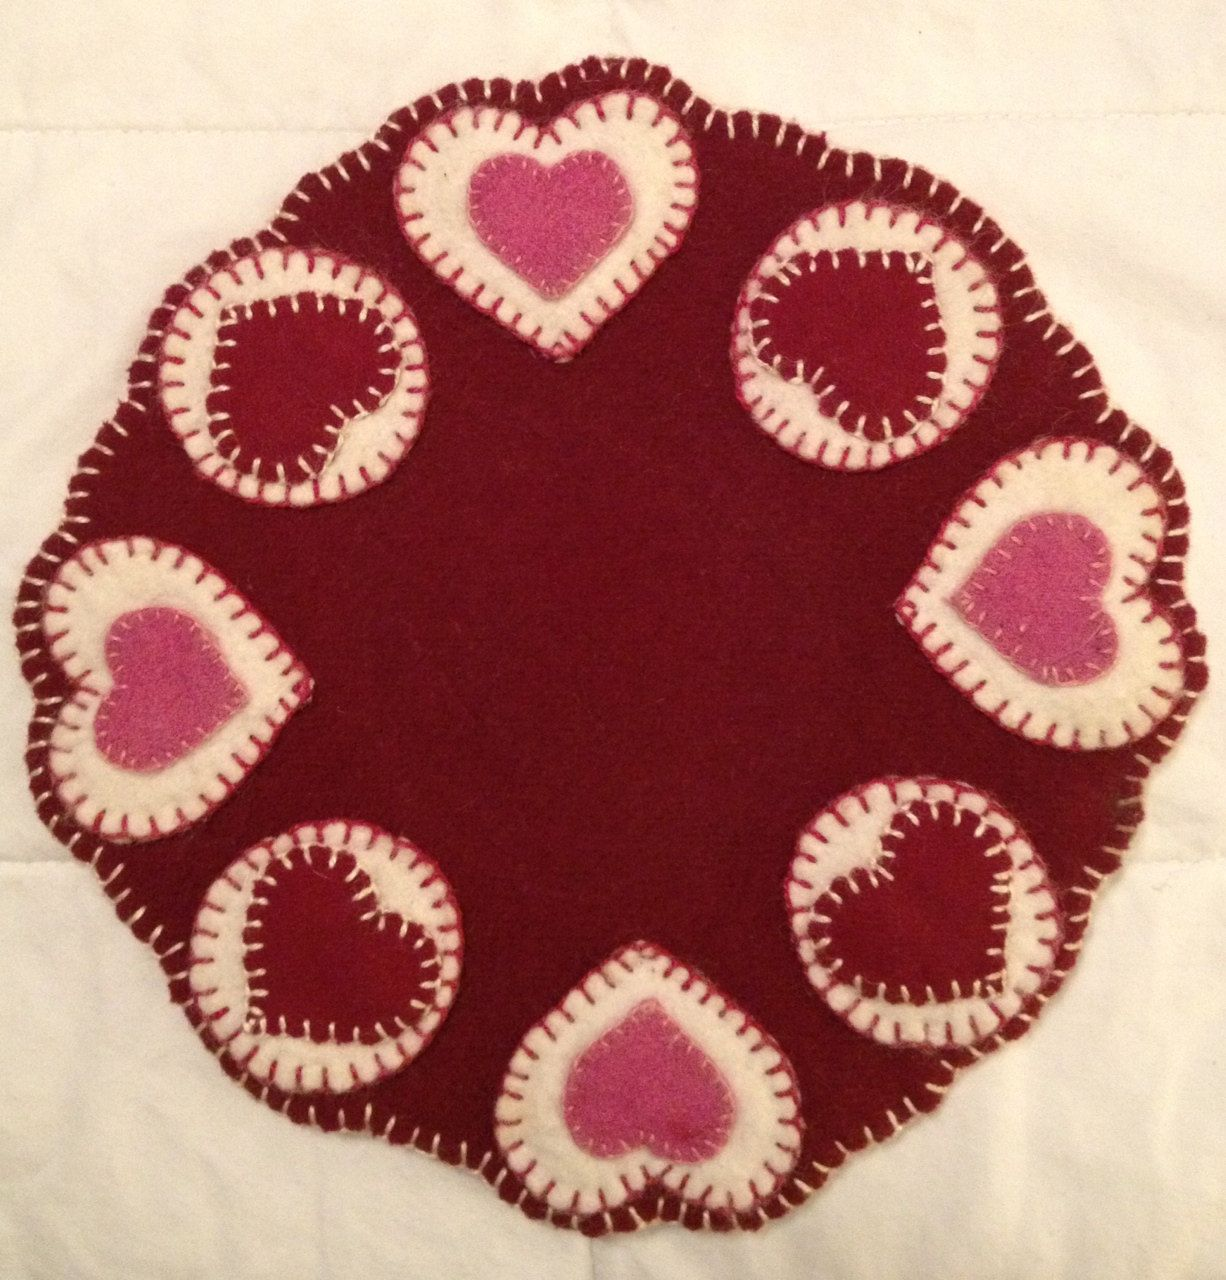 Felted Wool Hearts & Pennies Penny Rug / Candle Mat